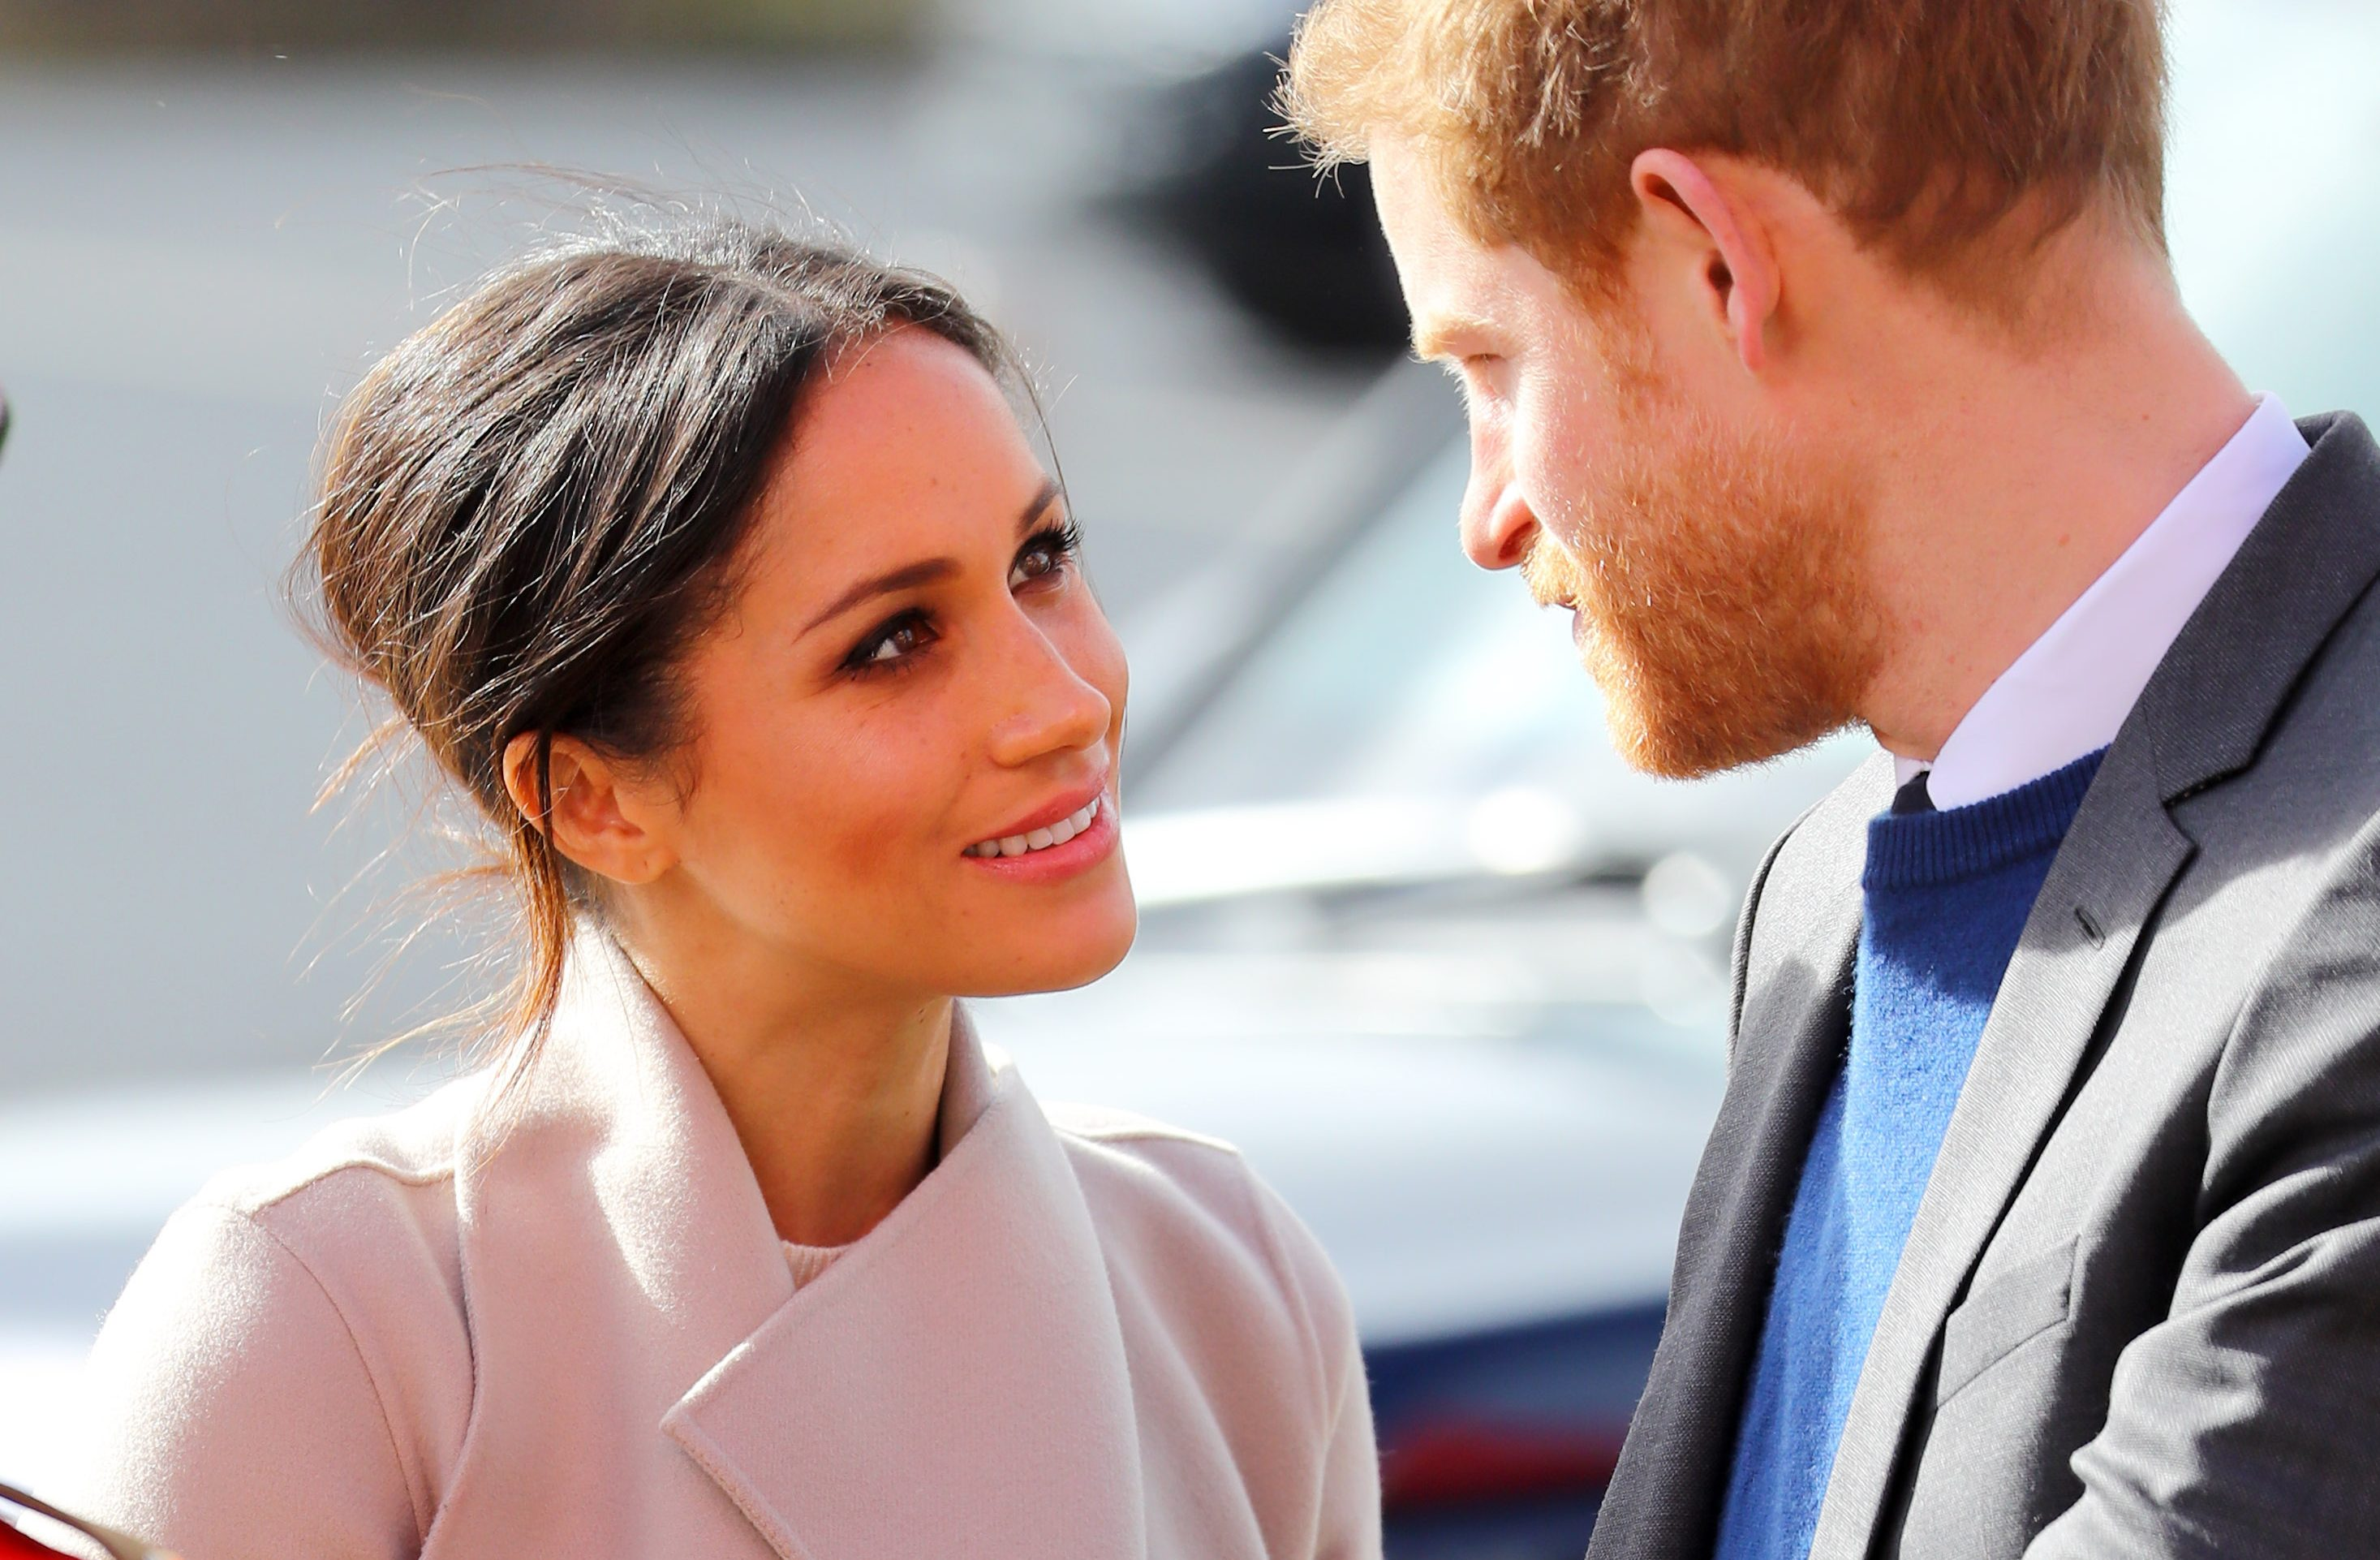 Prince Harry and Meghan Markle reveal dress code for their wedding